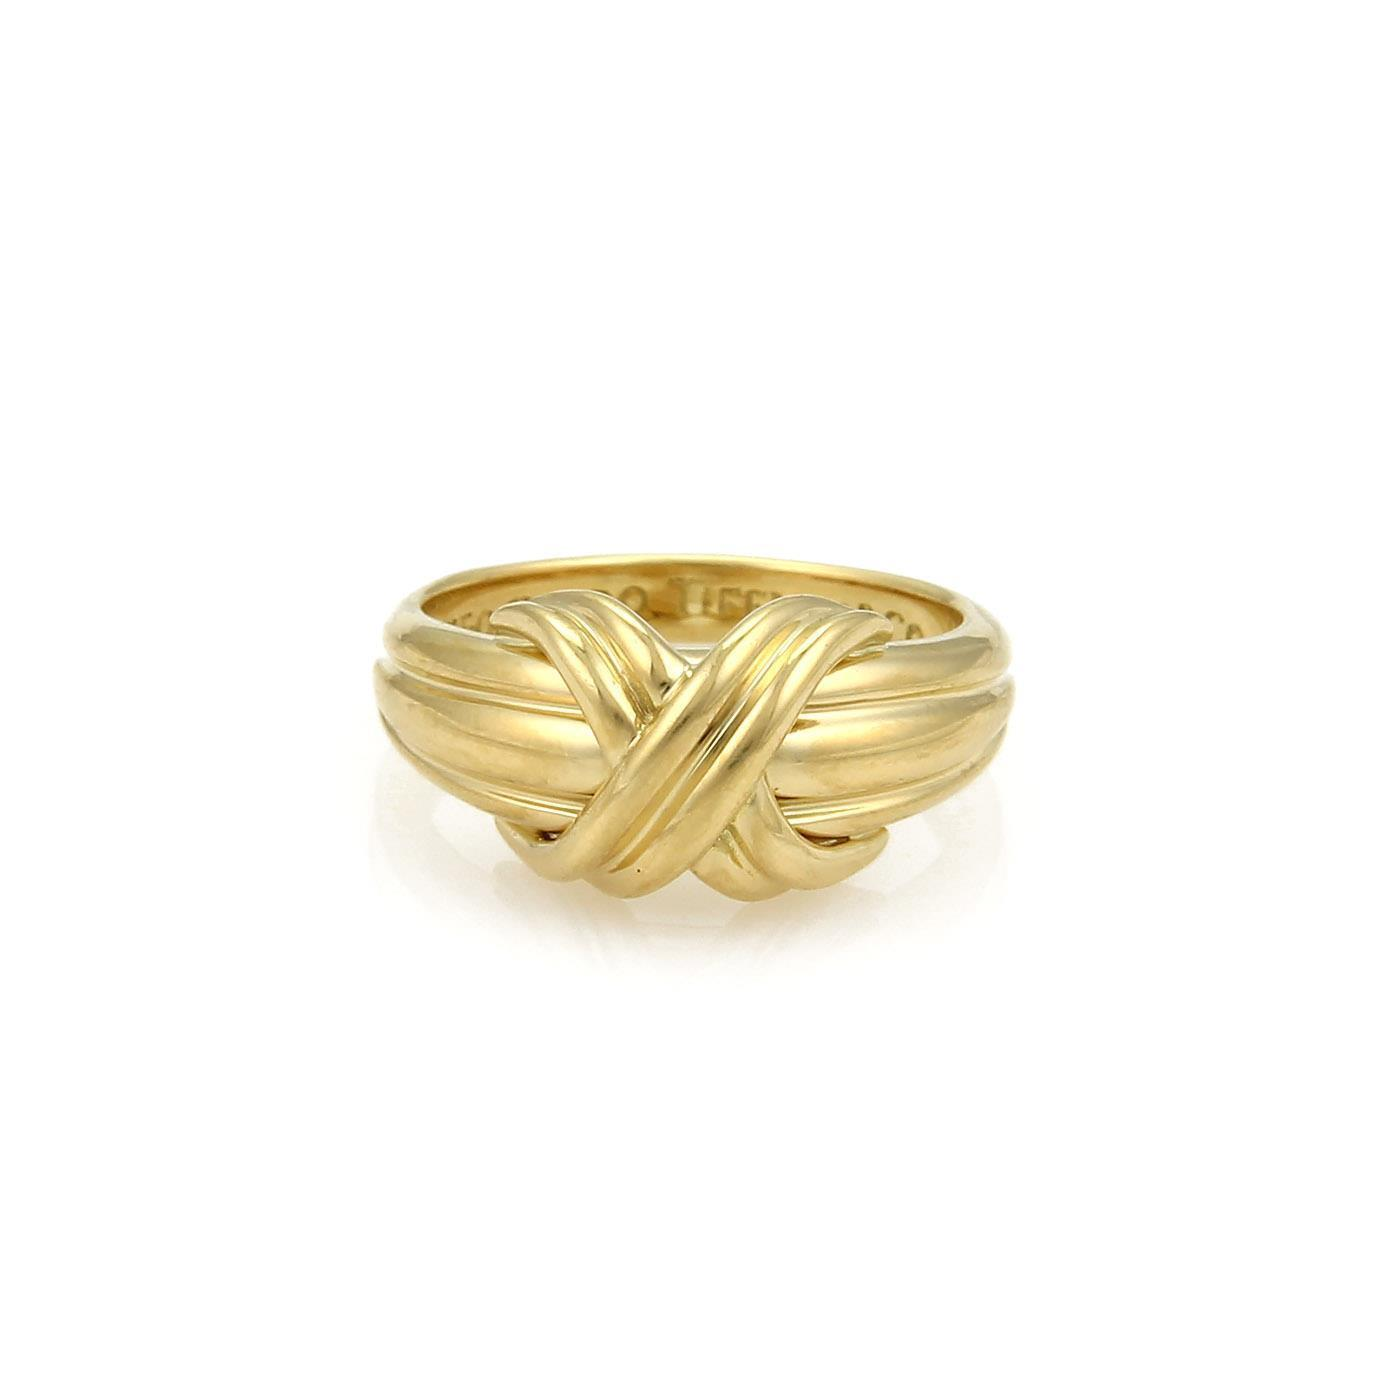 x crossover grooved ring in 18k yellow gold